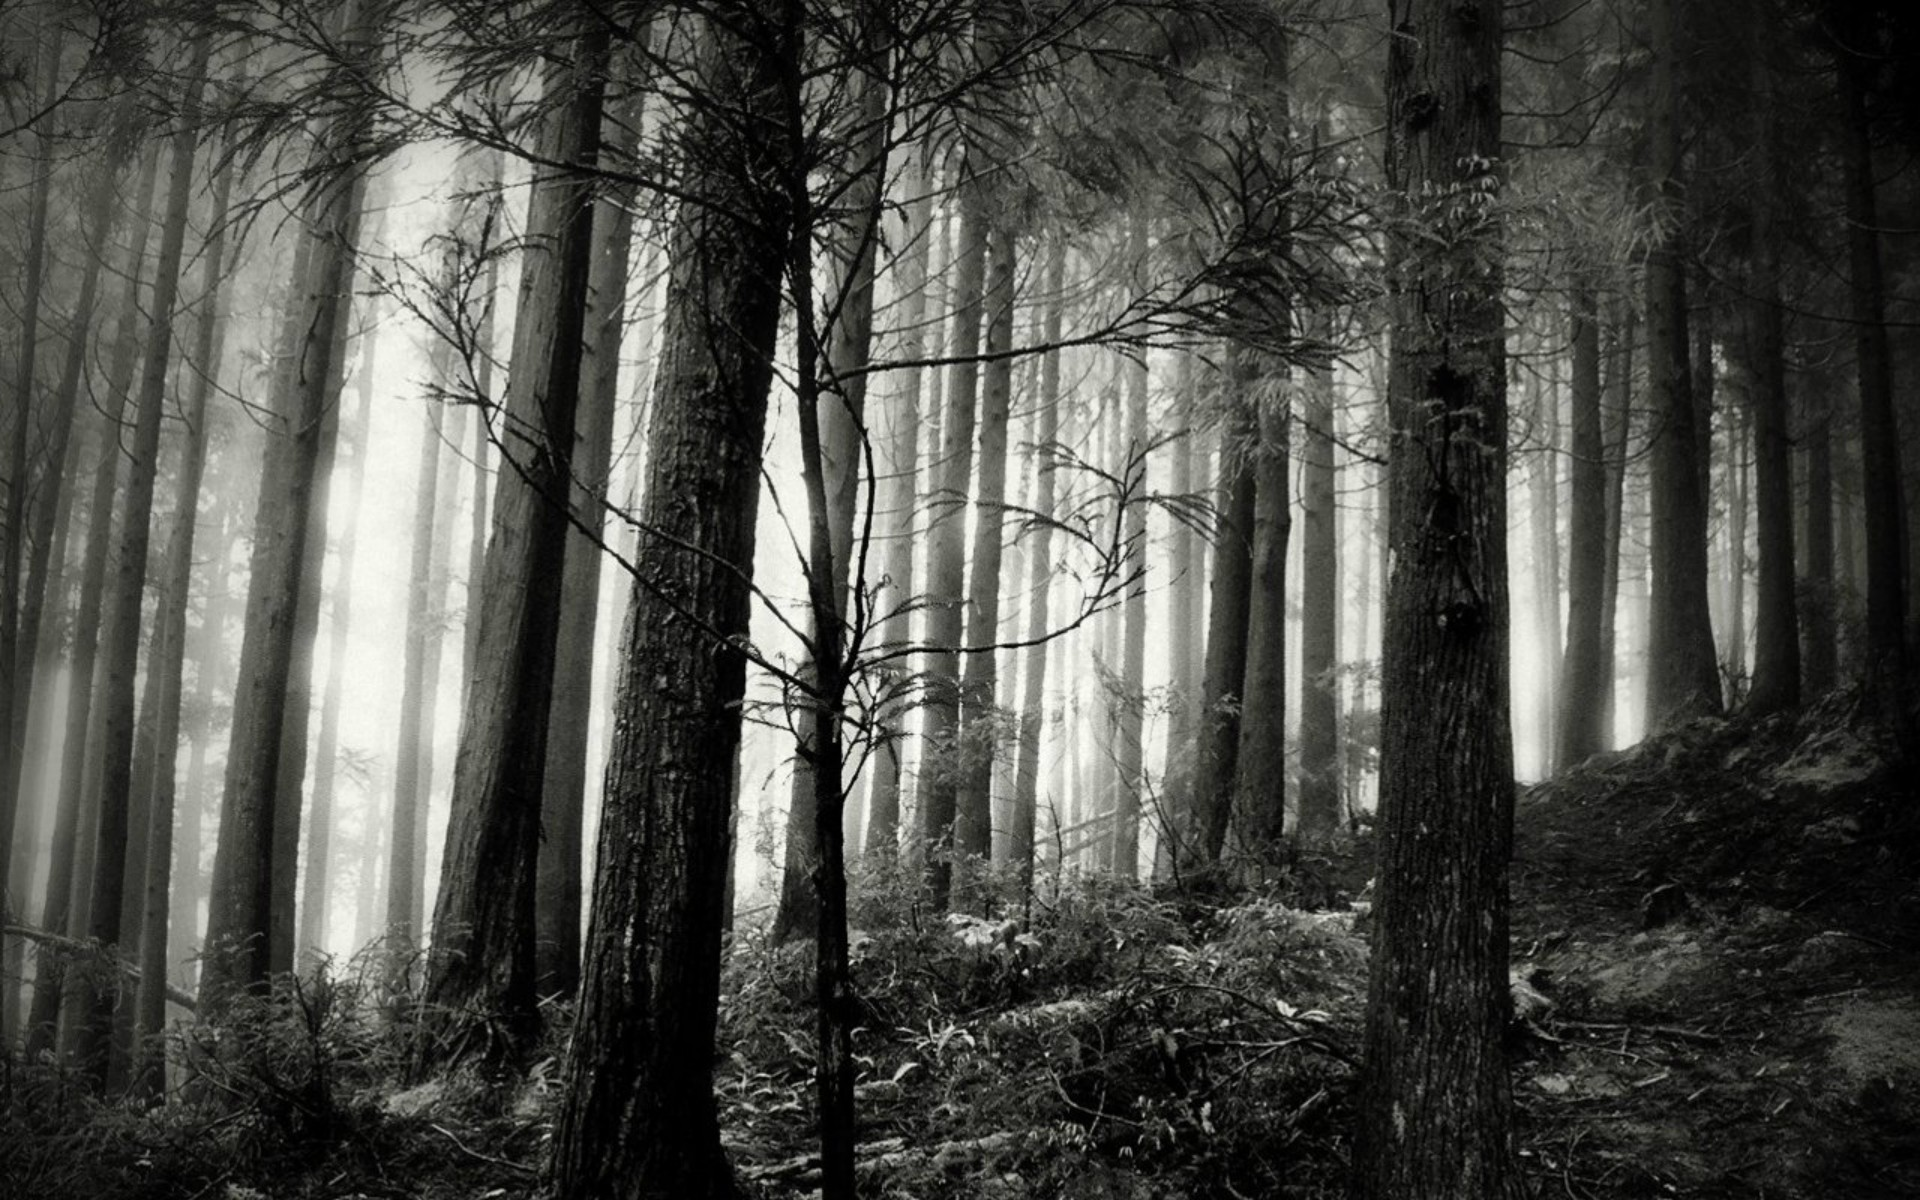 Black And White Forest Wallpaper   HD Wallpapers Pretty 1920x1200